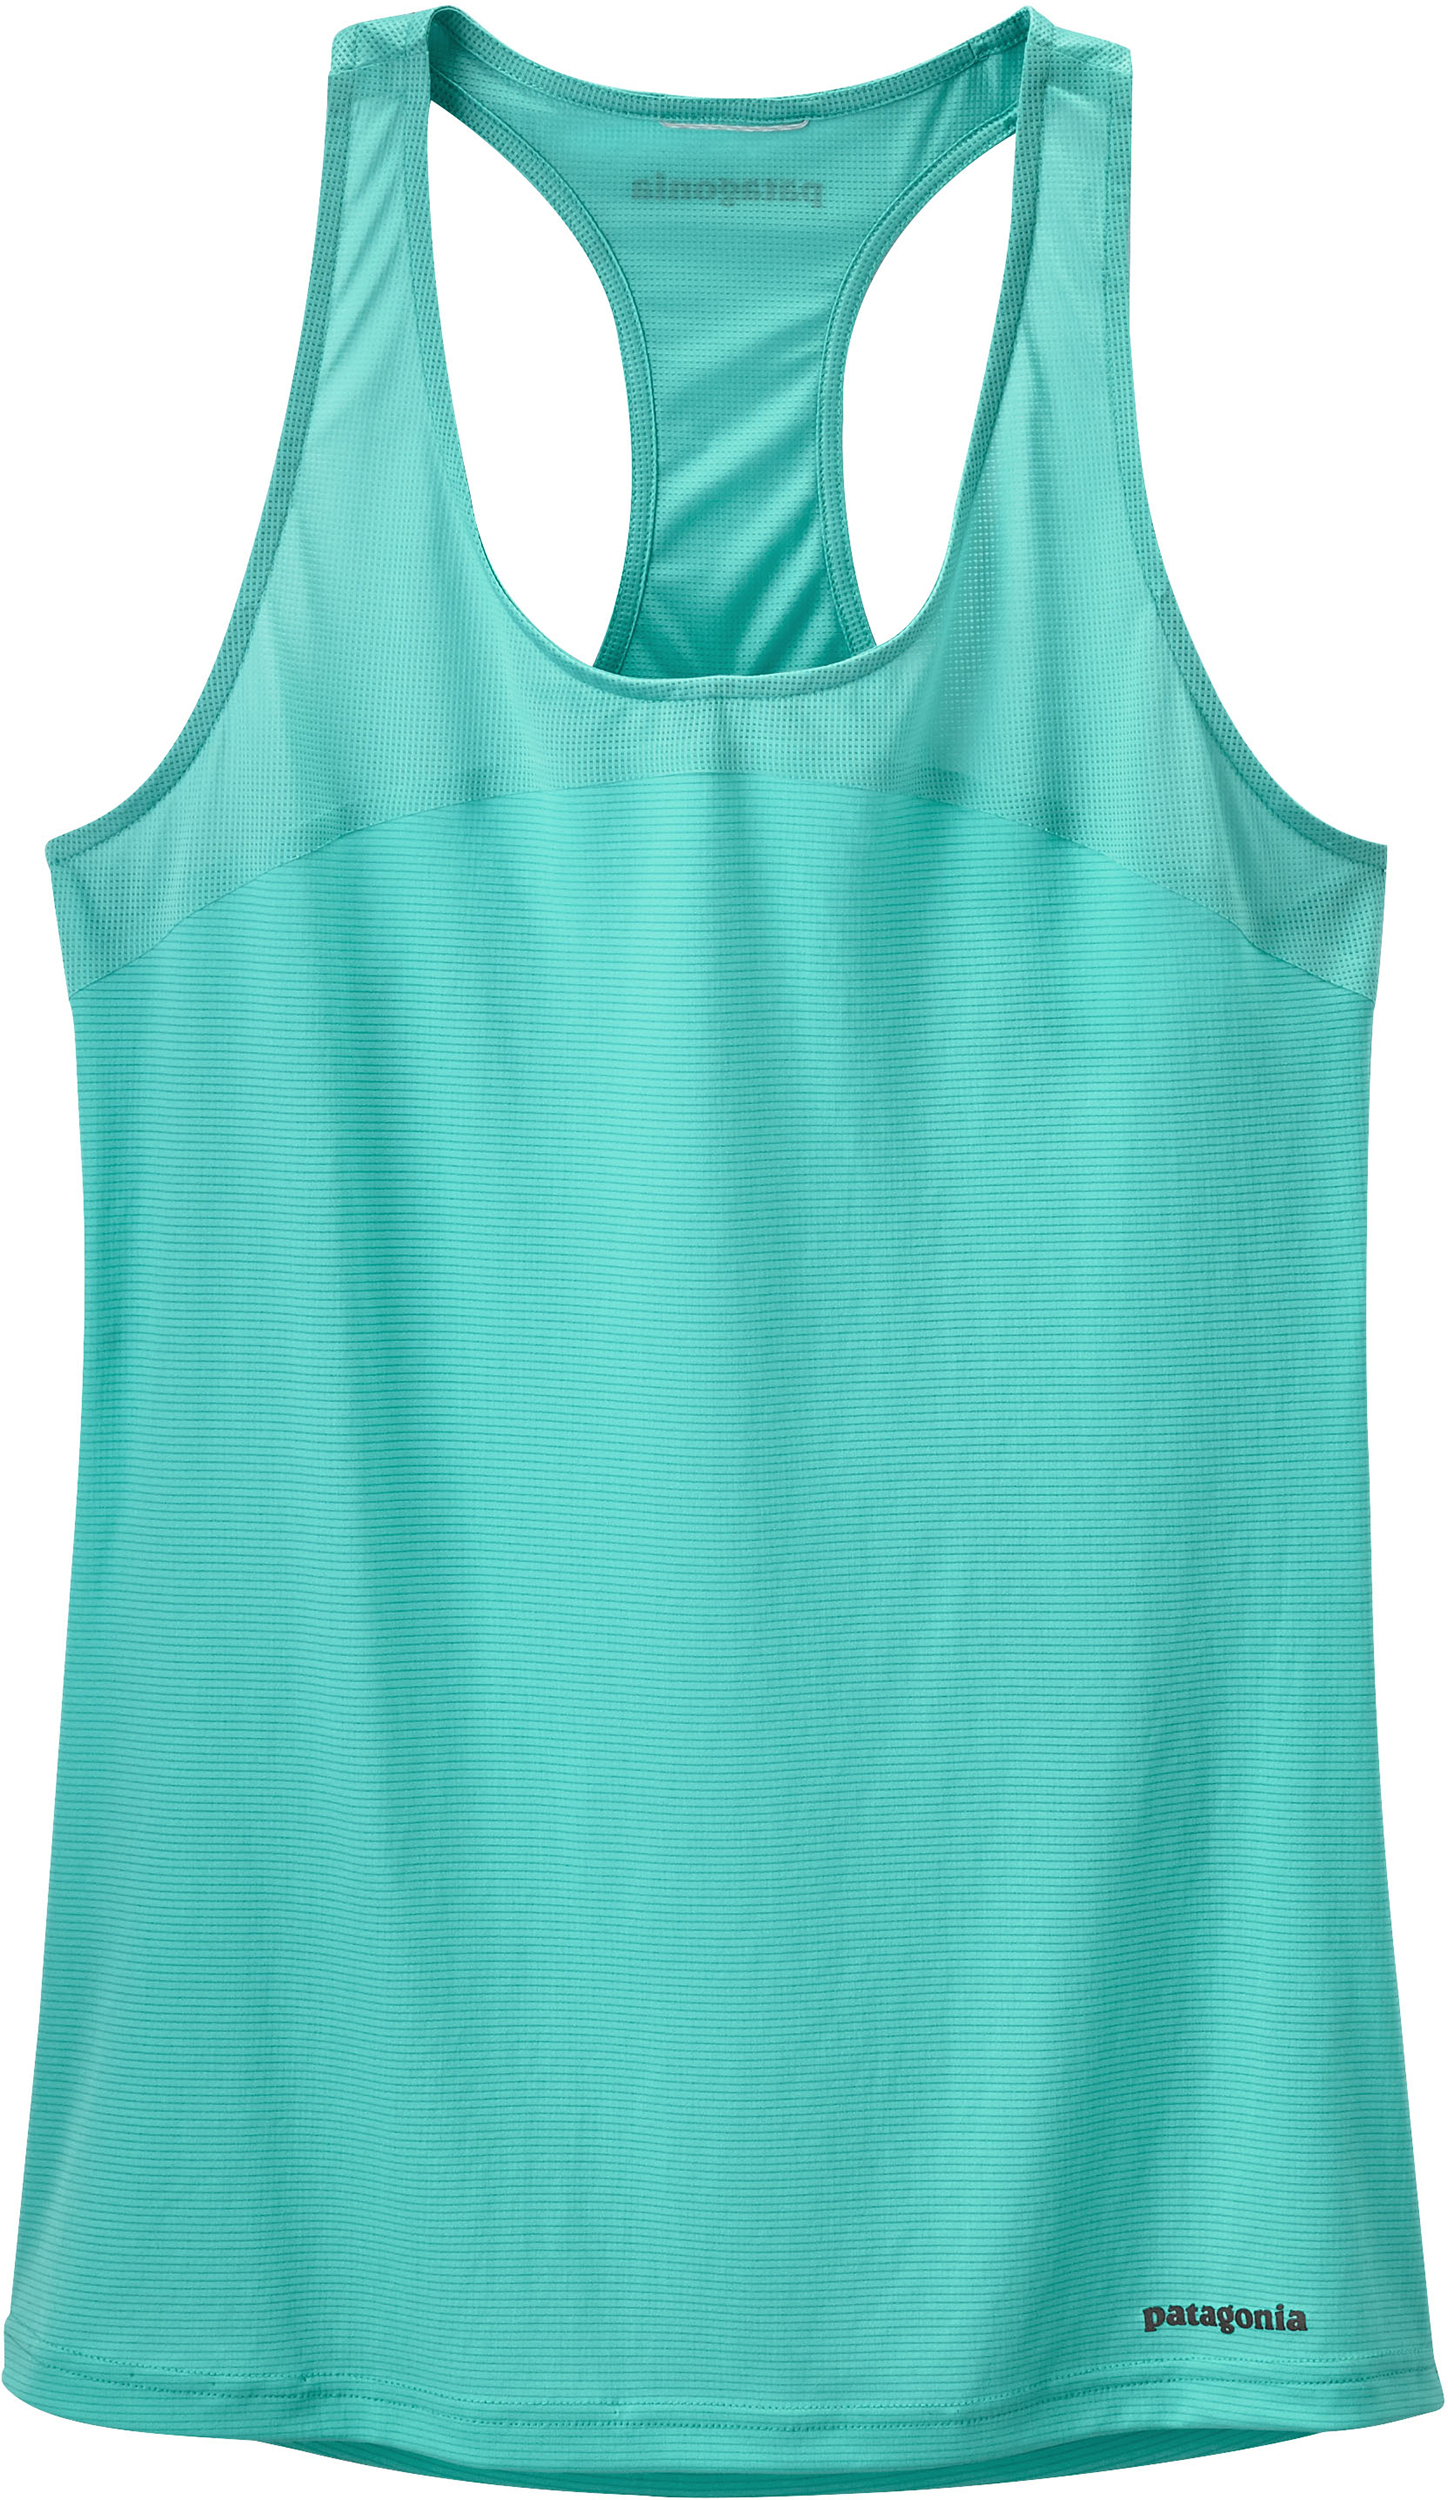 d5f2c5d224f Patagonia Women s Running shirts and tops